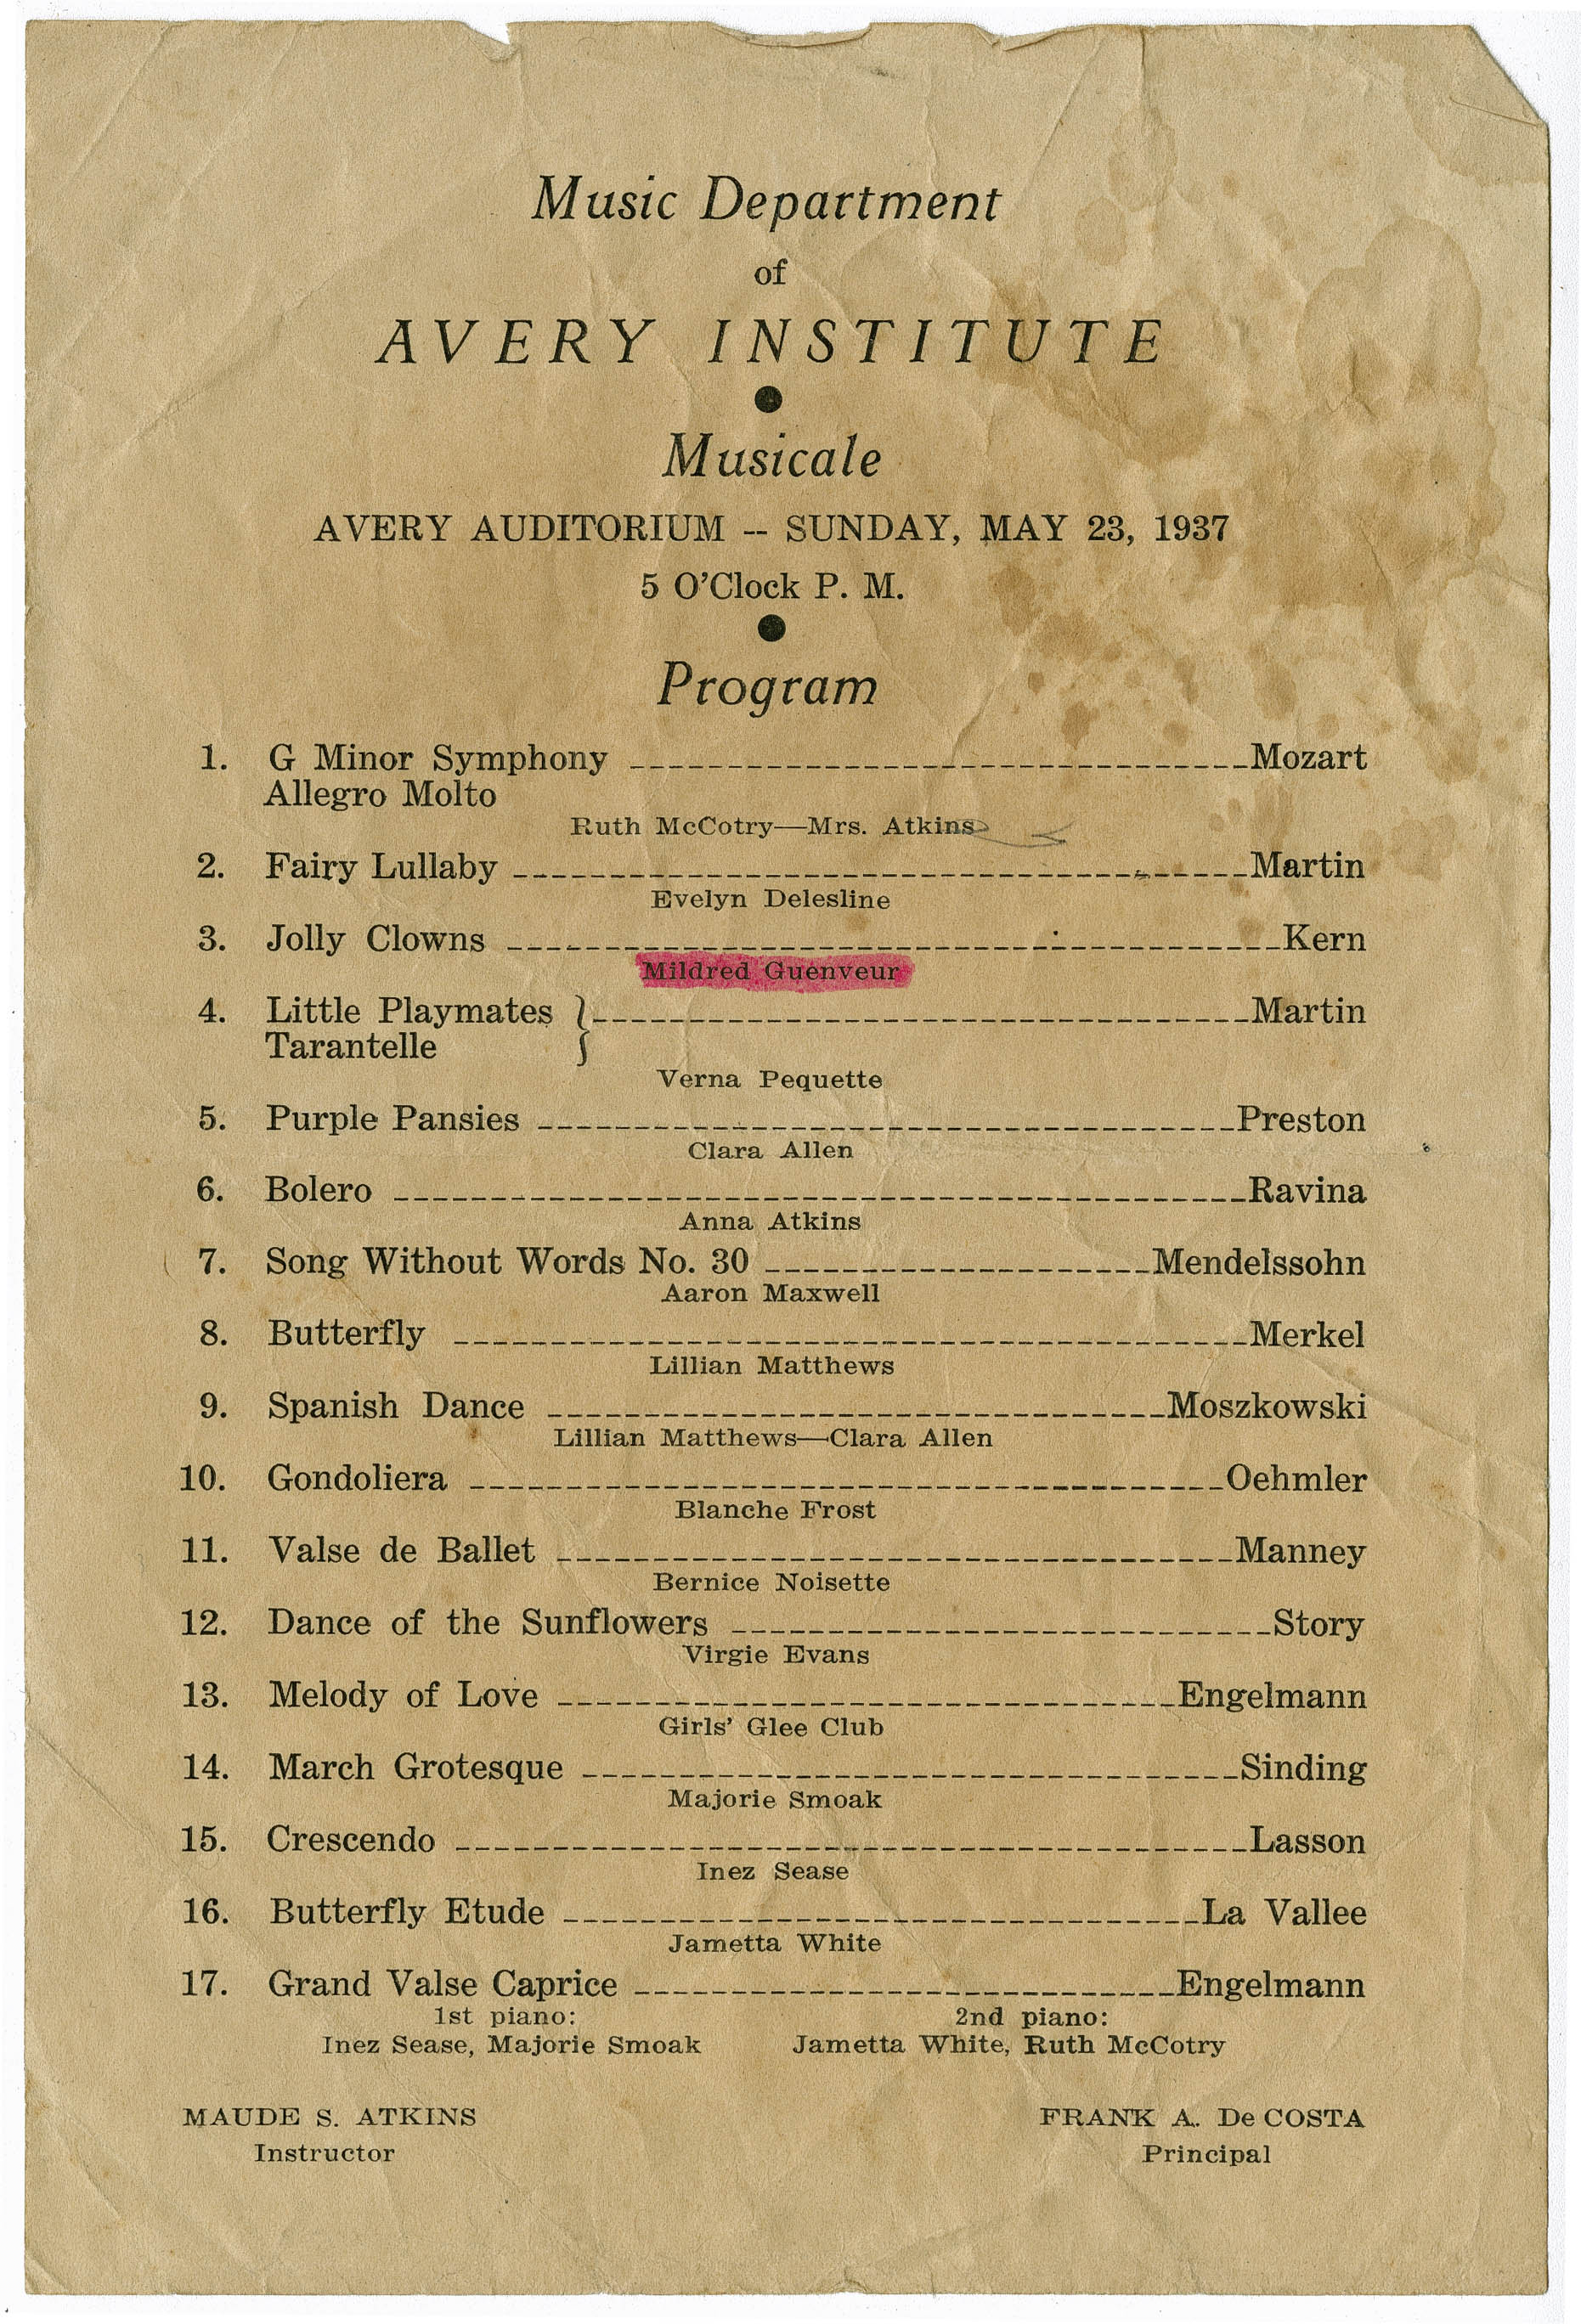 Program for Avery Music Department Musicale production